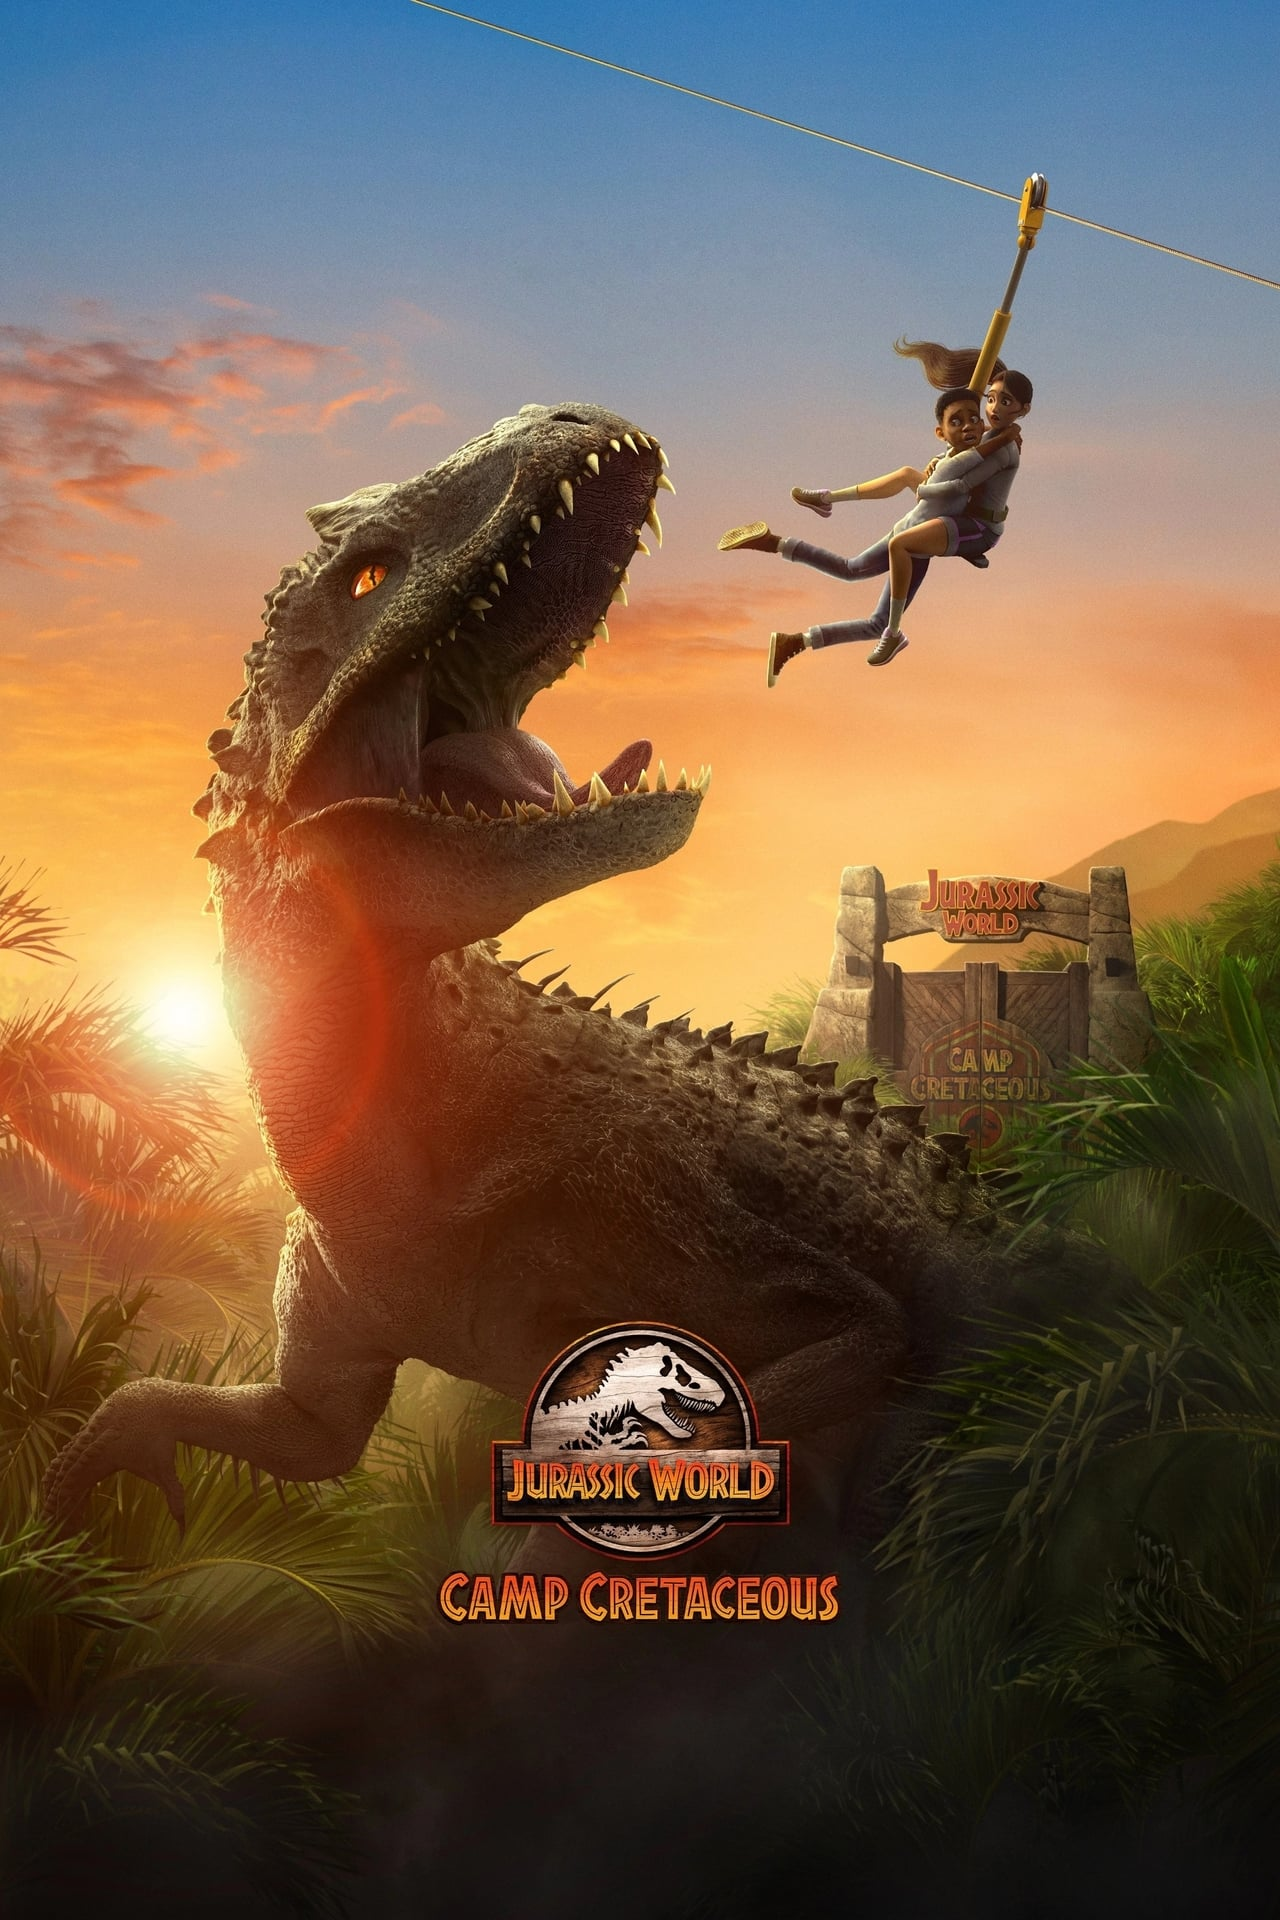 Jurassic World: Camp Cretaceous (season 2)